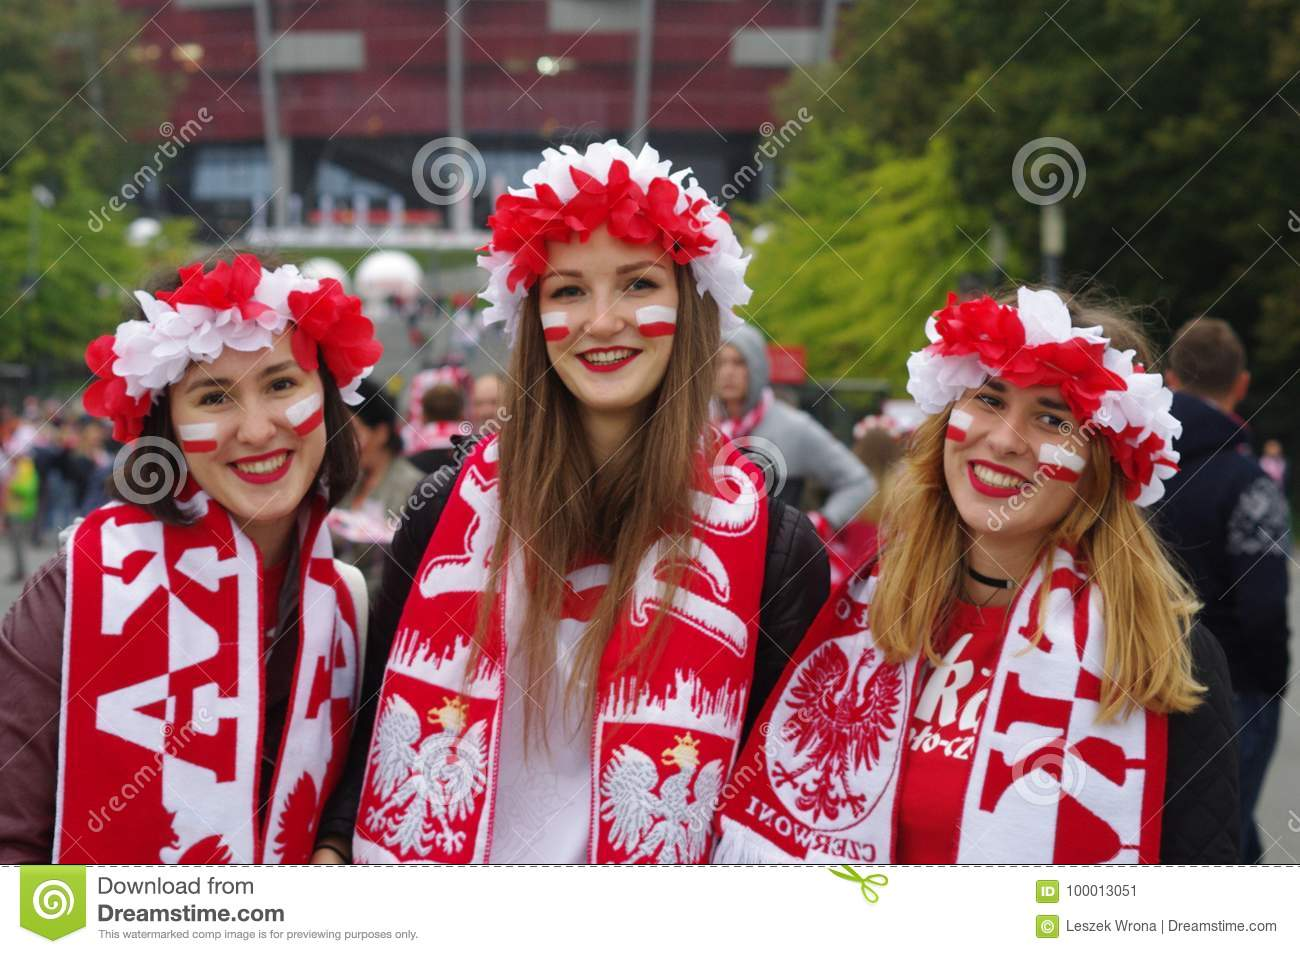 Pictures of polish women